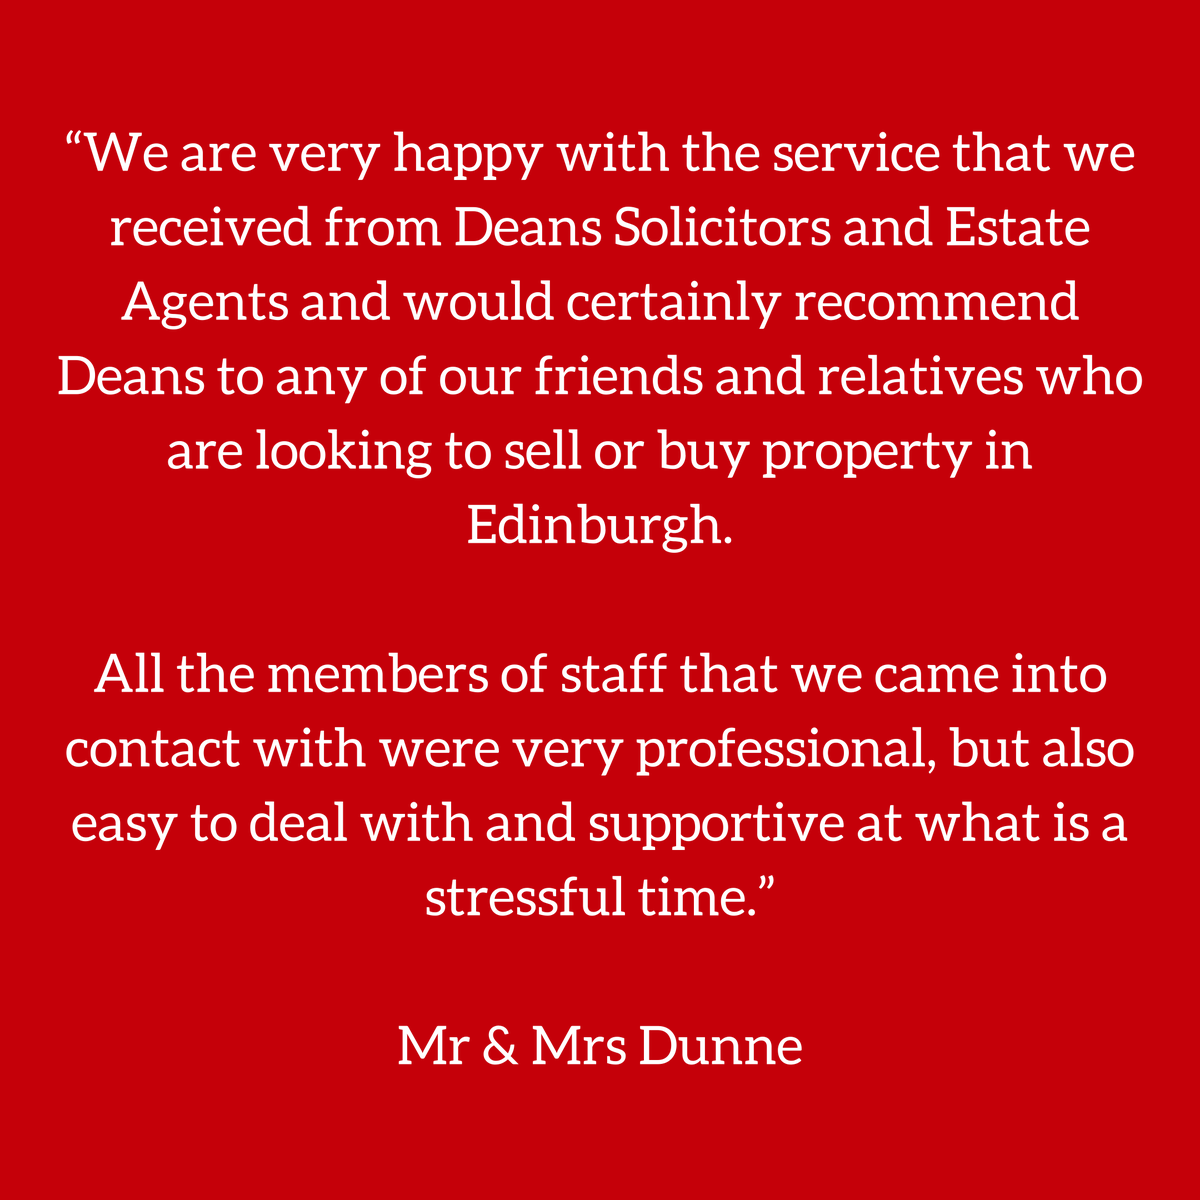 #FeedbackFriday 😀 We understand buying or selling can be stressful but Team Deans are on hand to help! To arrange a Free Valuation or for advice on Purchasing call 0131 667 1900 📞 #deansmeans #greatservice #property #buying #selling #edinburgh